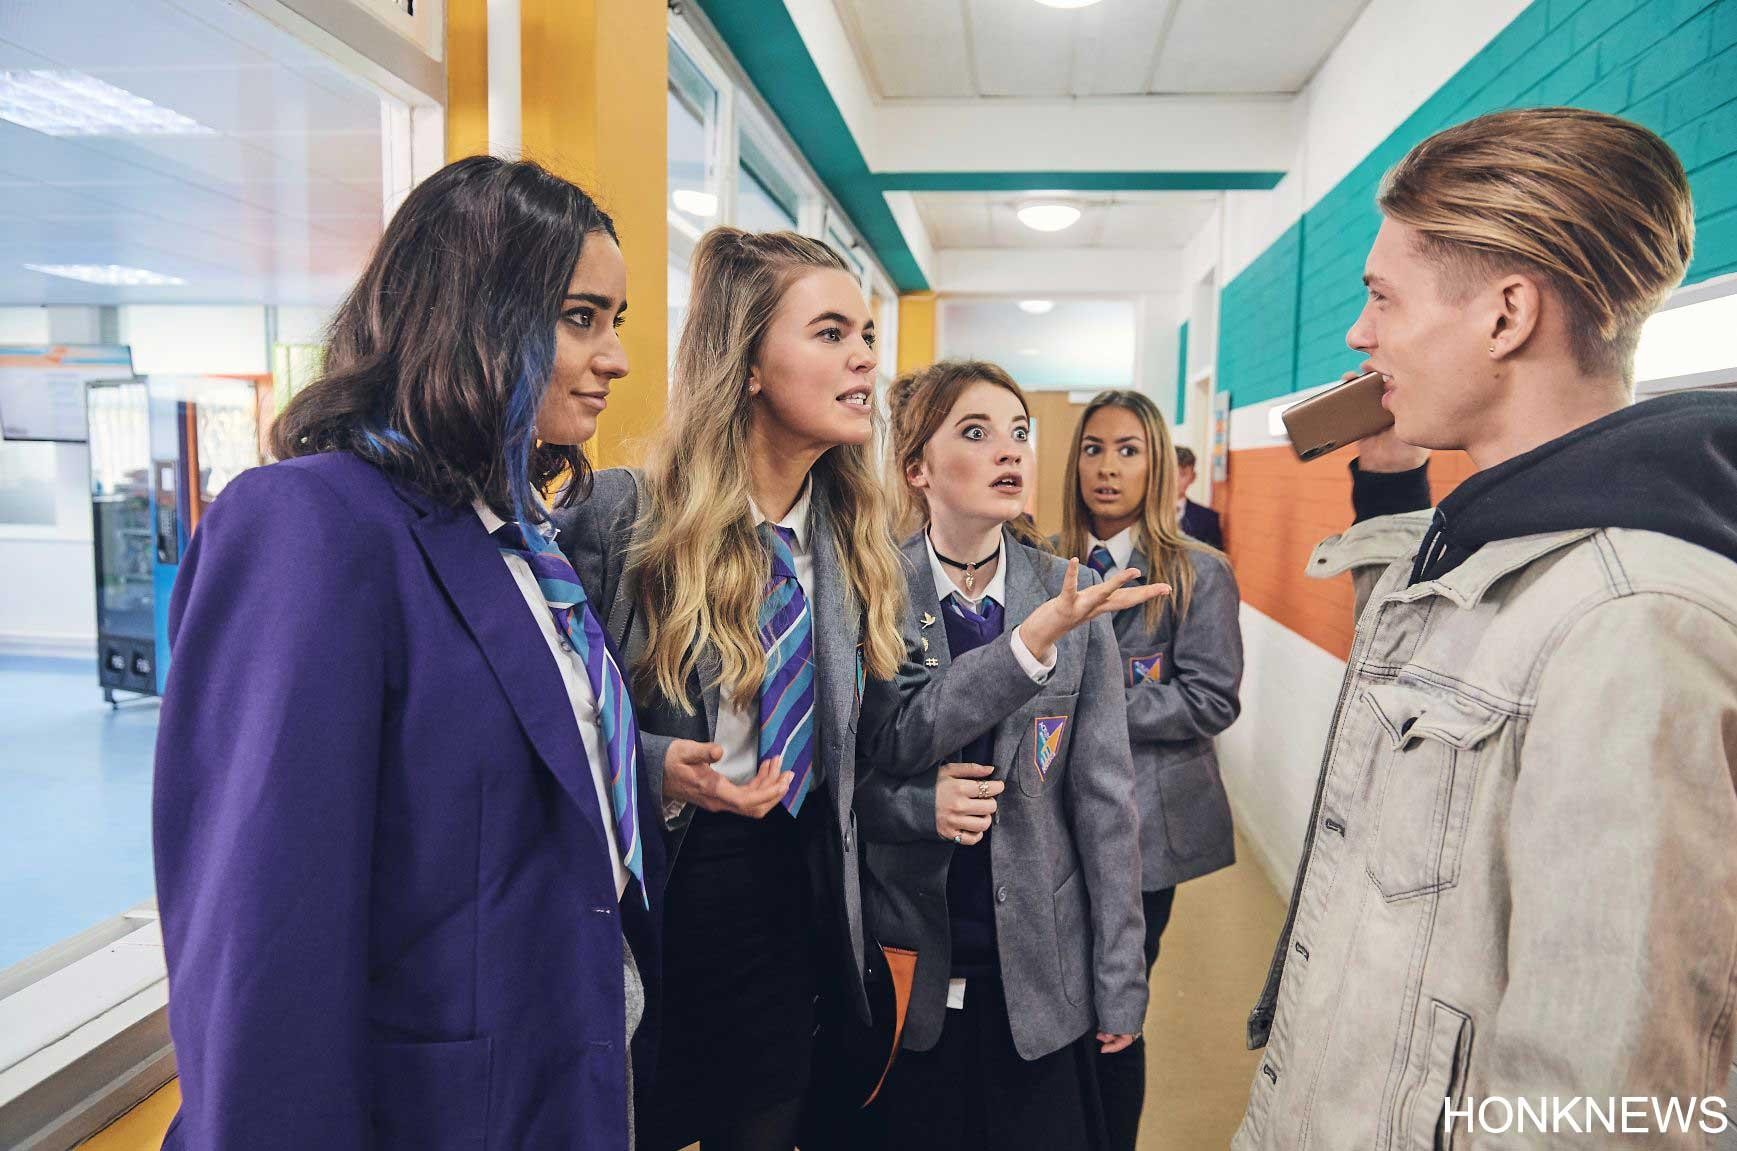 Ackley Bridge Season 4: All about Cast, Plot, and Release Date 2